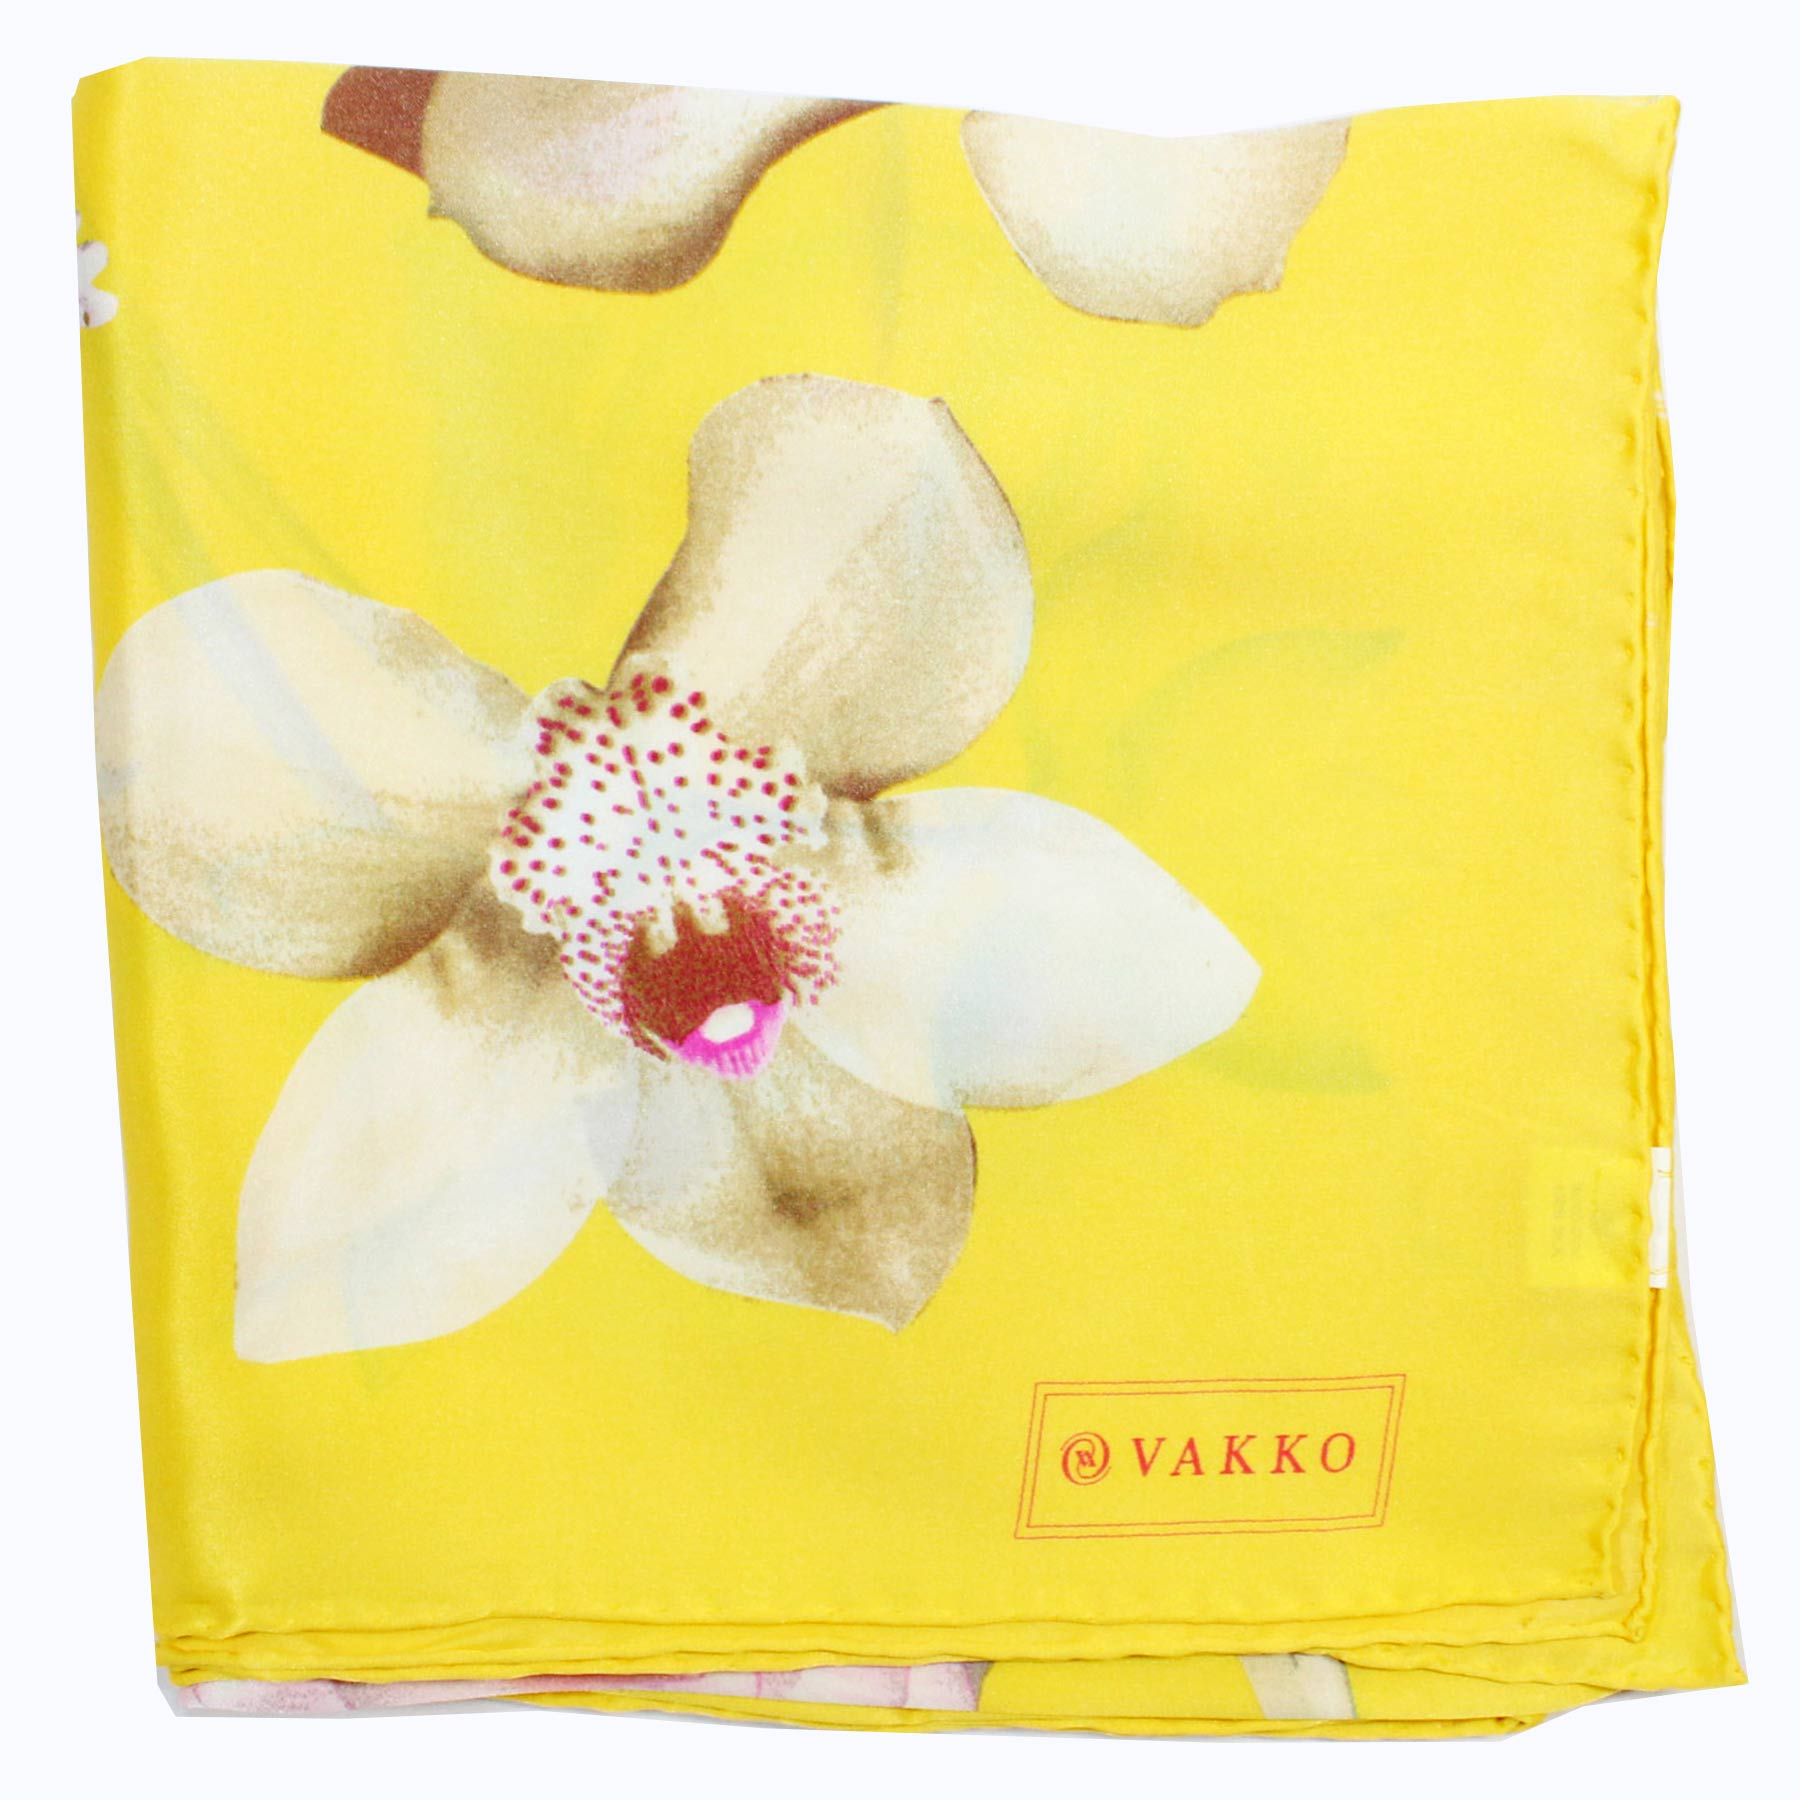 Vakko Scarf Yellow Floral - Large Silk Square Scarf SALE